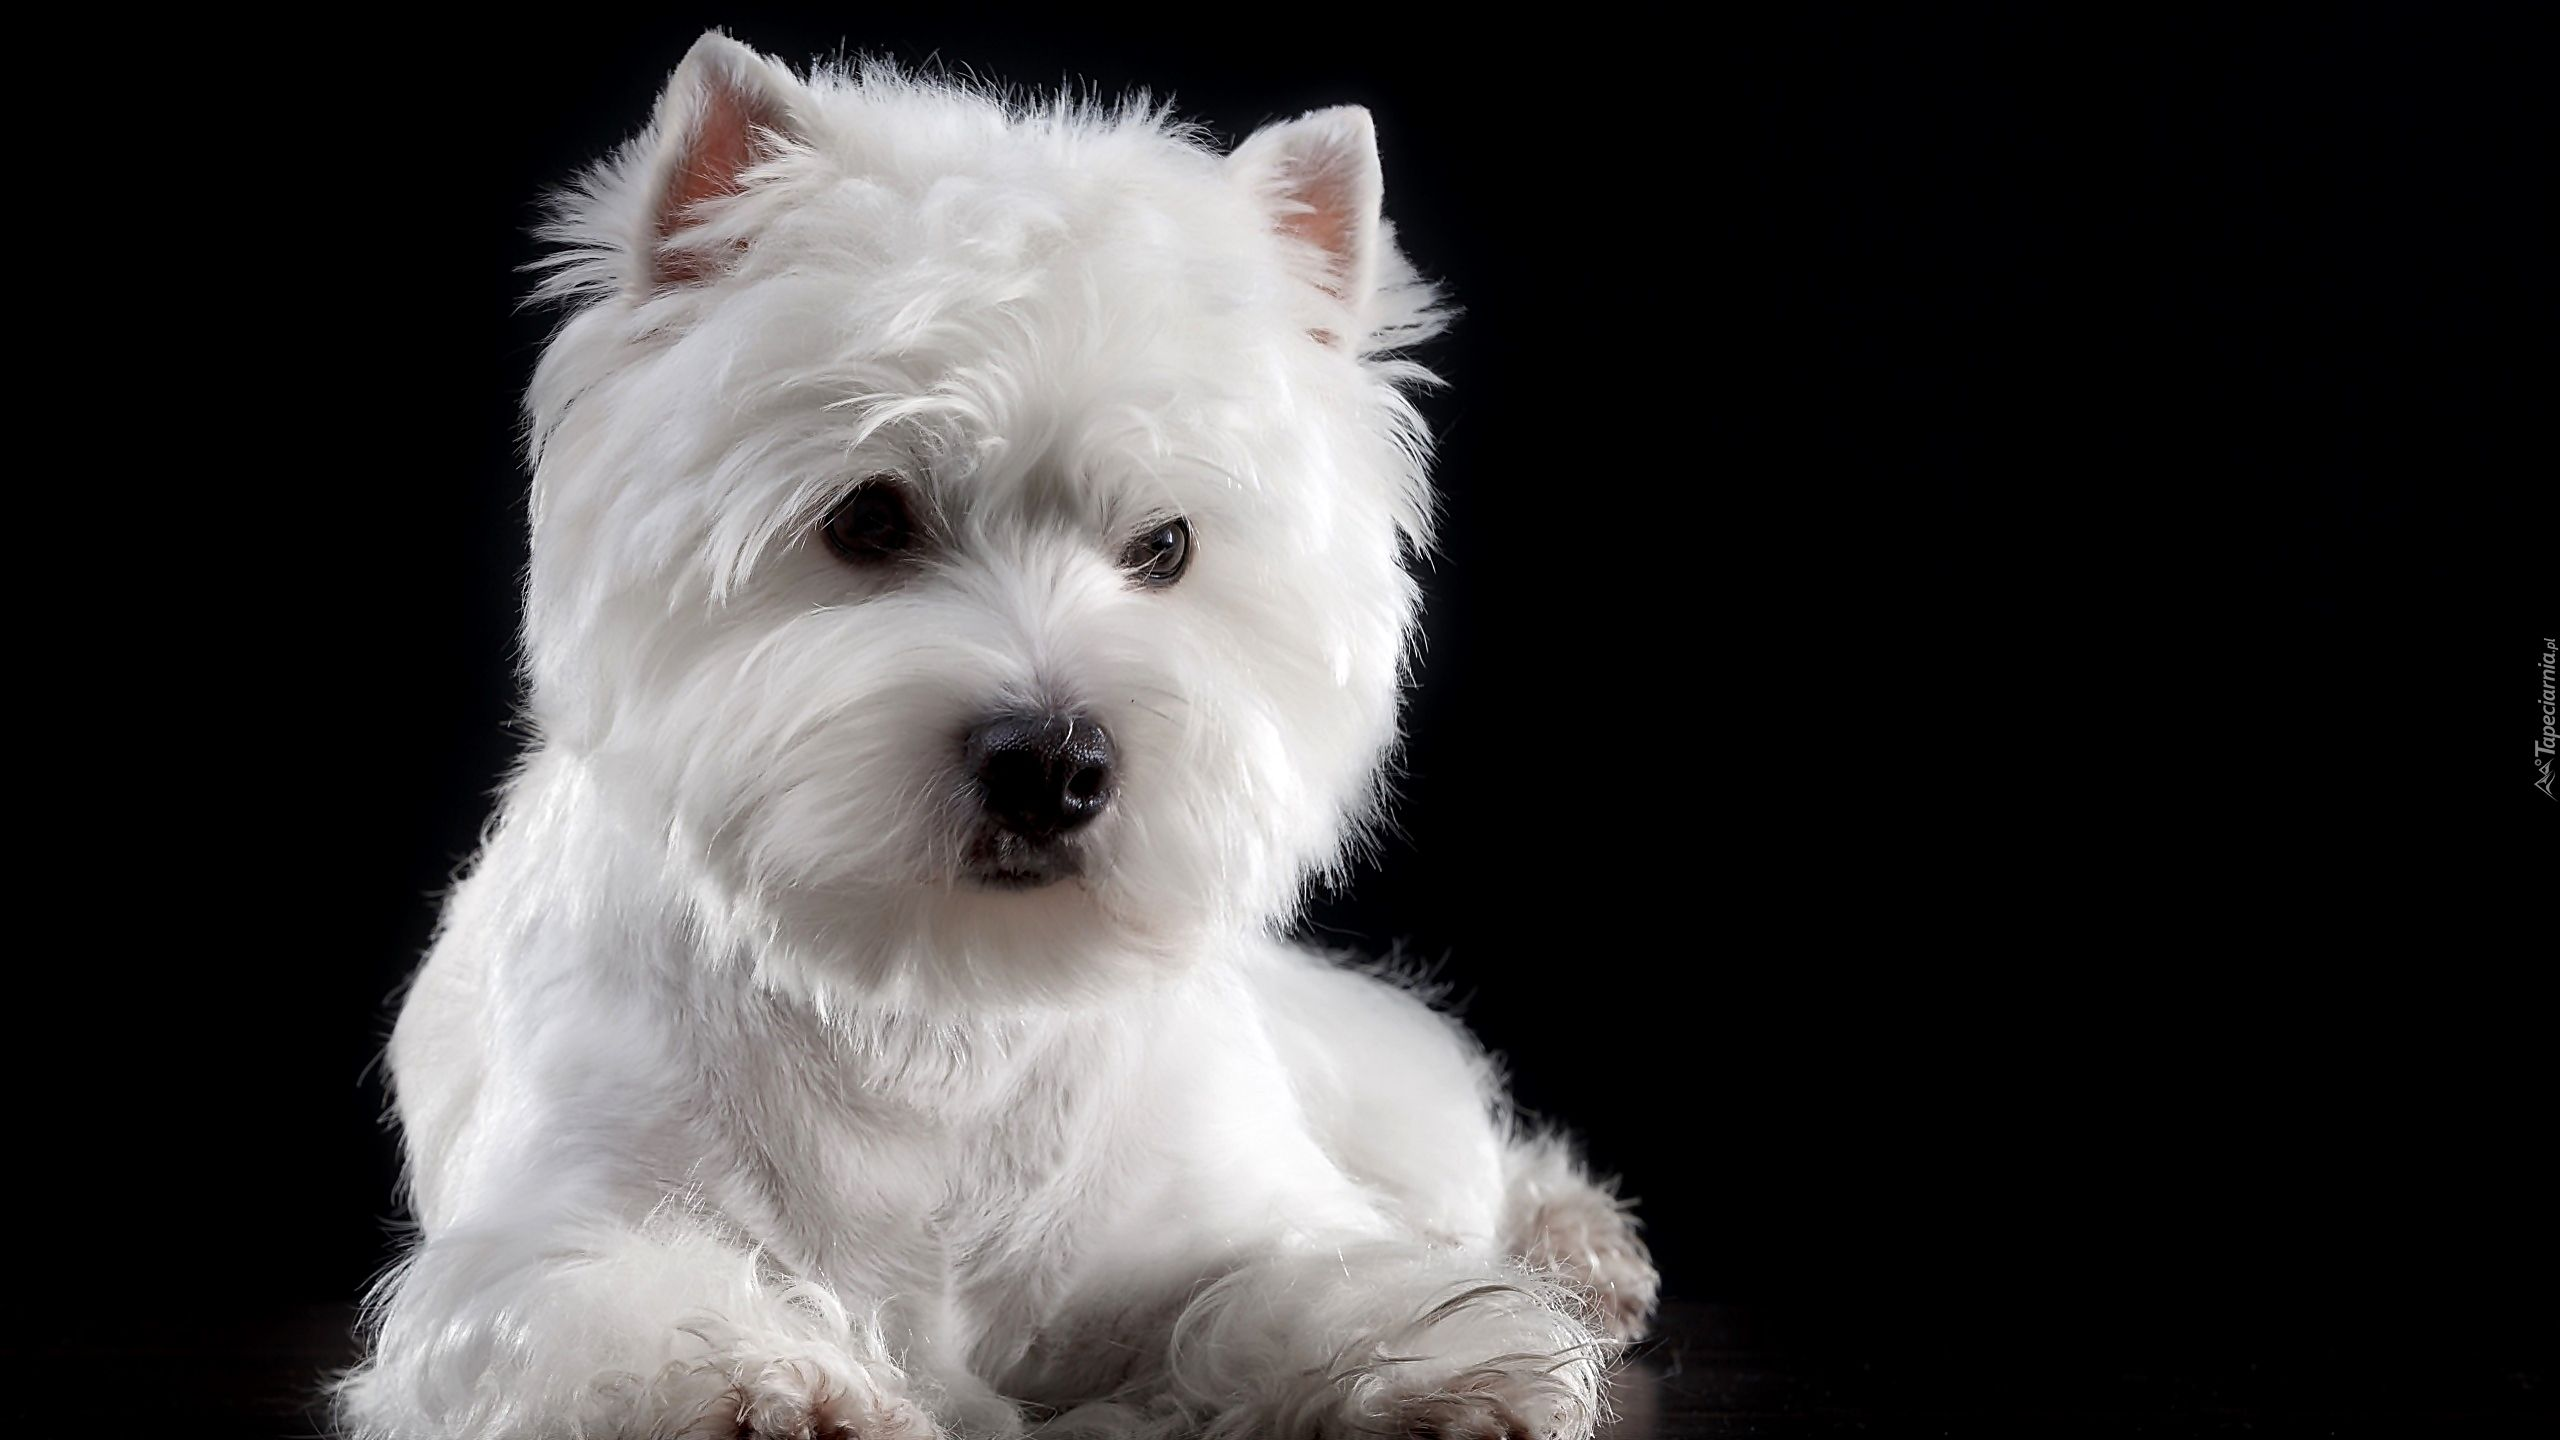 Pies West Highland White Terrier Mordka Bialy Ciemne Tlo Bichon Frise Bichon Curly Dogs